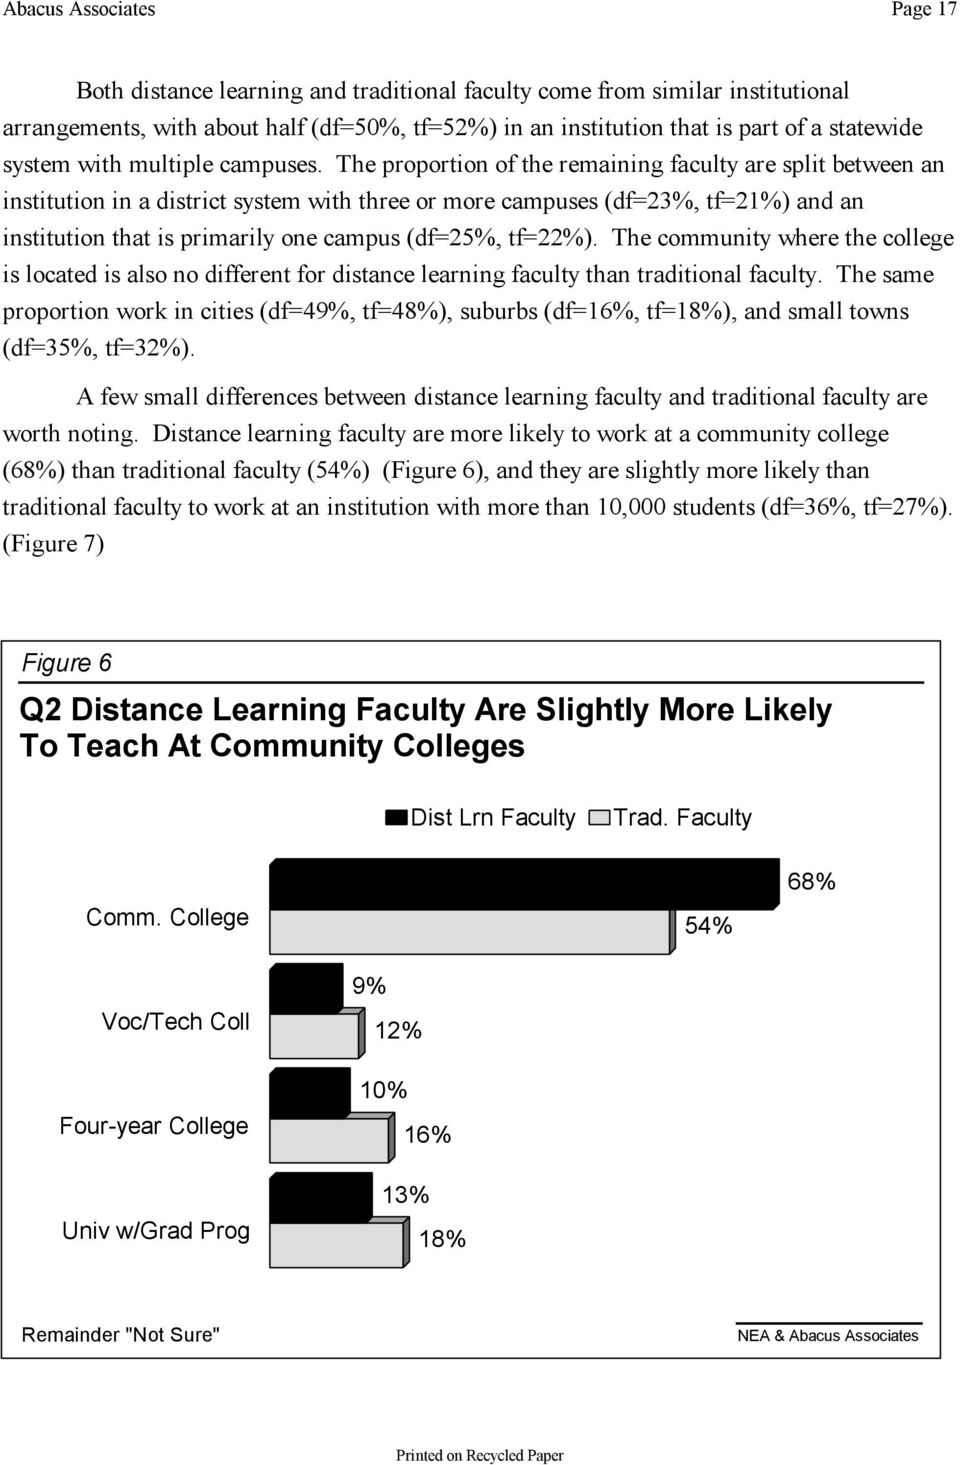 The proportion of the remaining faculty are split between an institution in a district system with three or more campuses (df=23%, tf=21%) and an institution that is primarily one campus (df=25%,